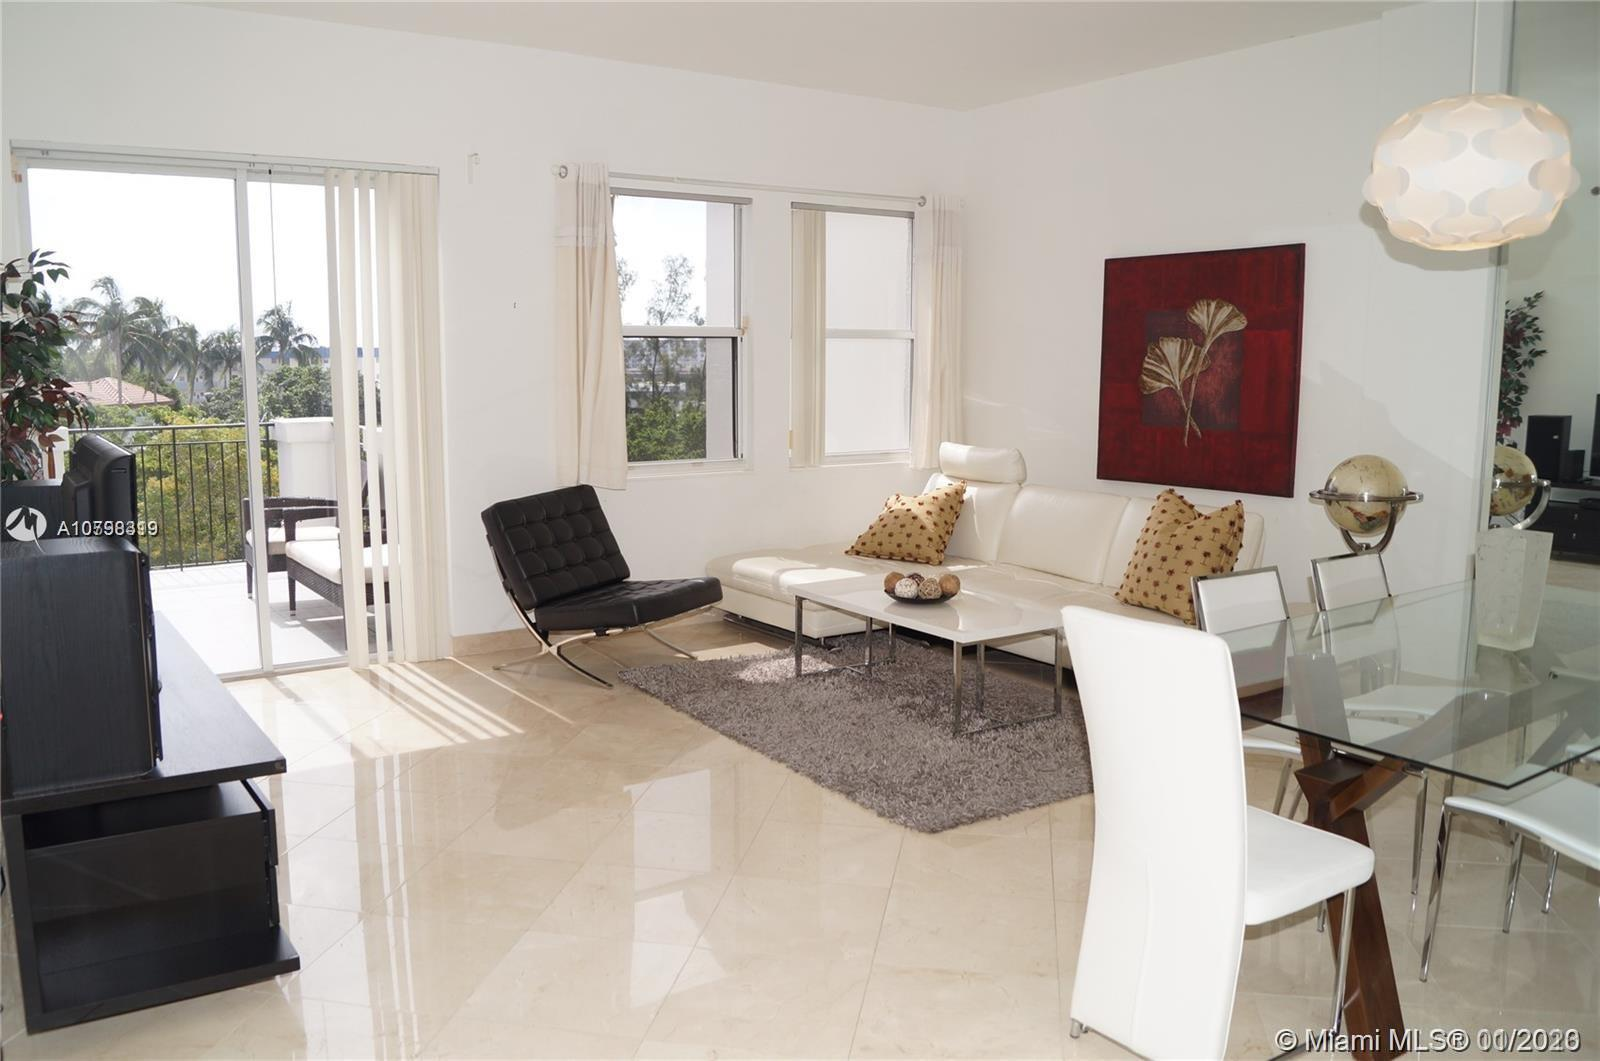 Spacious 2 bedroom, 2 bath unit with high ceilings, large closet space, multiple balconies in the he